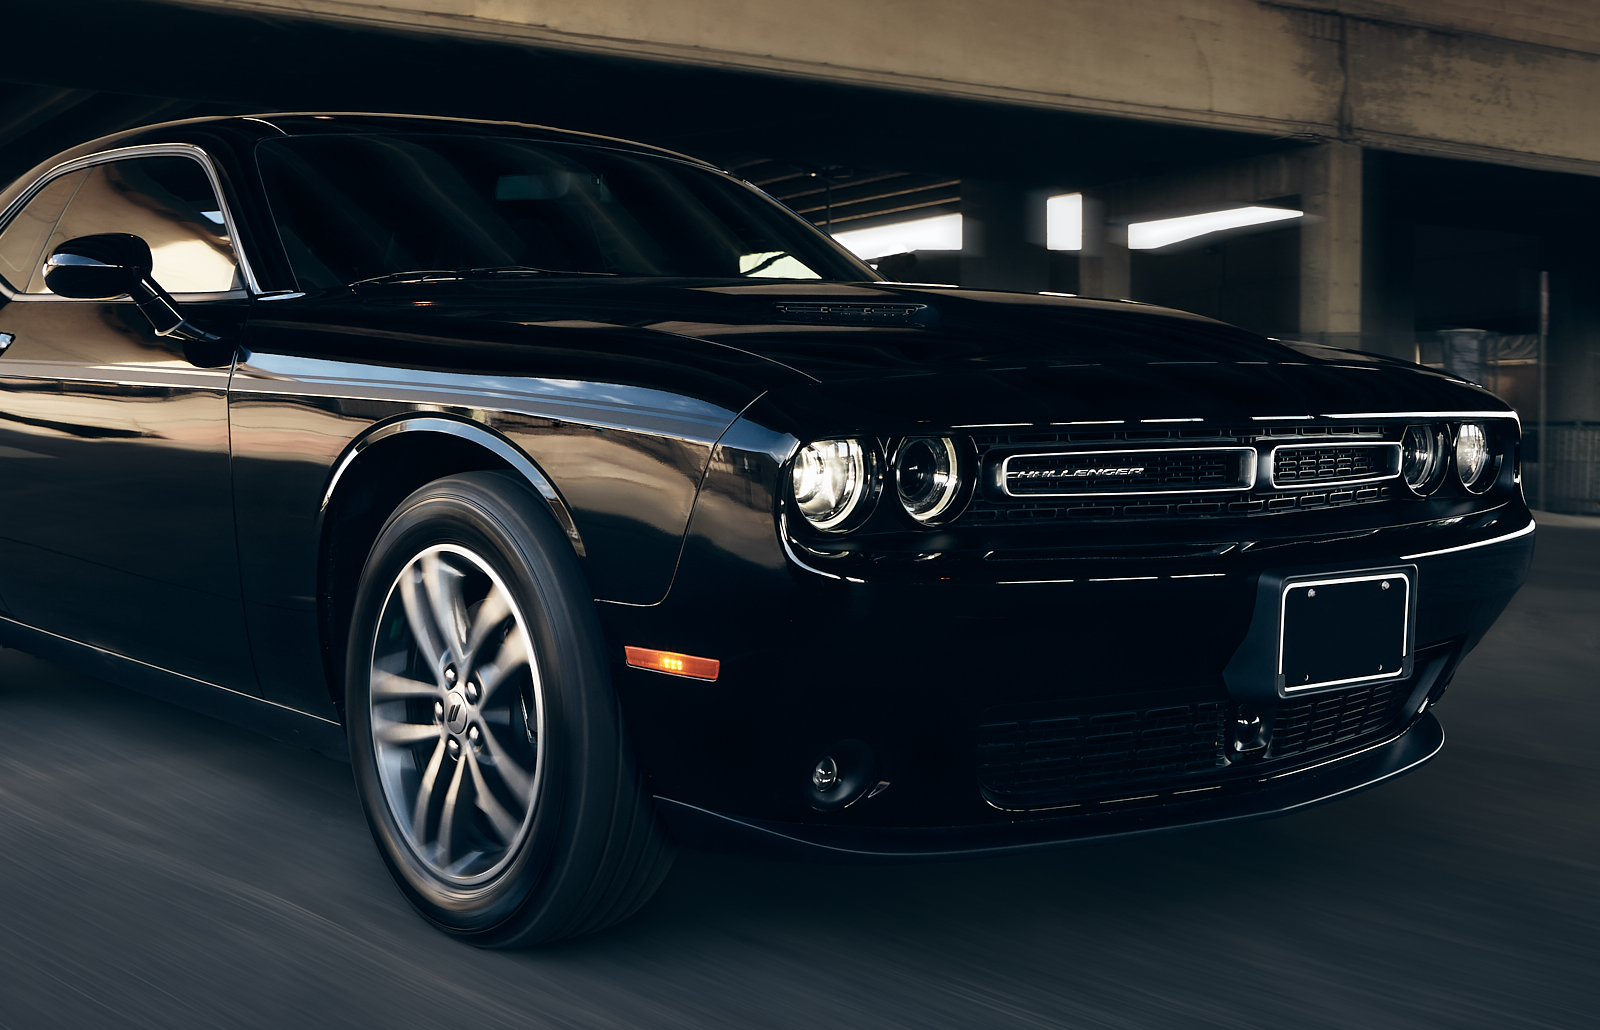 Dodge Challenger Apr 27 2019 1.jpg